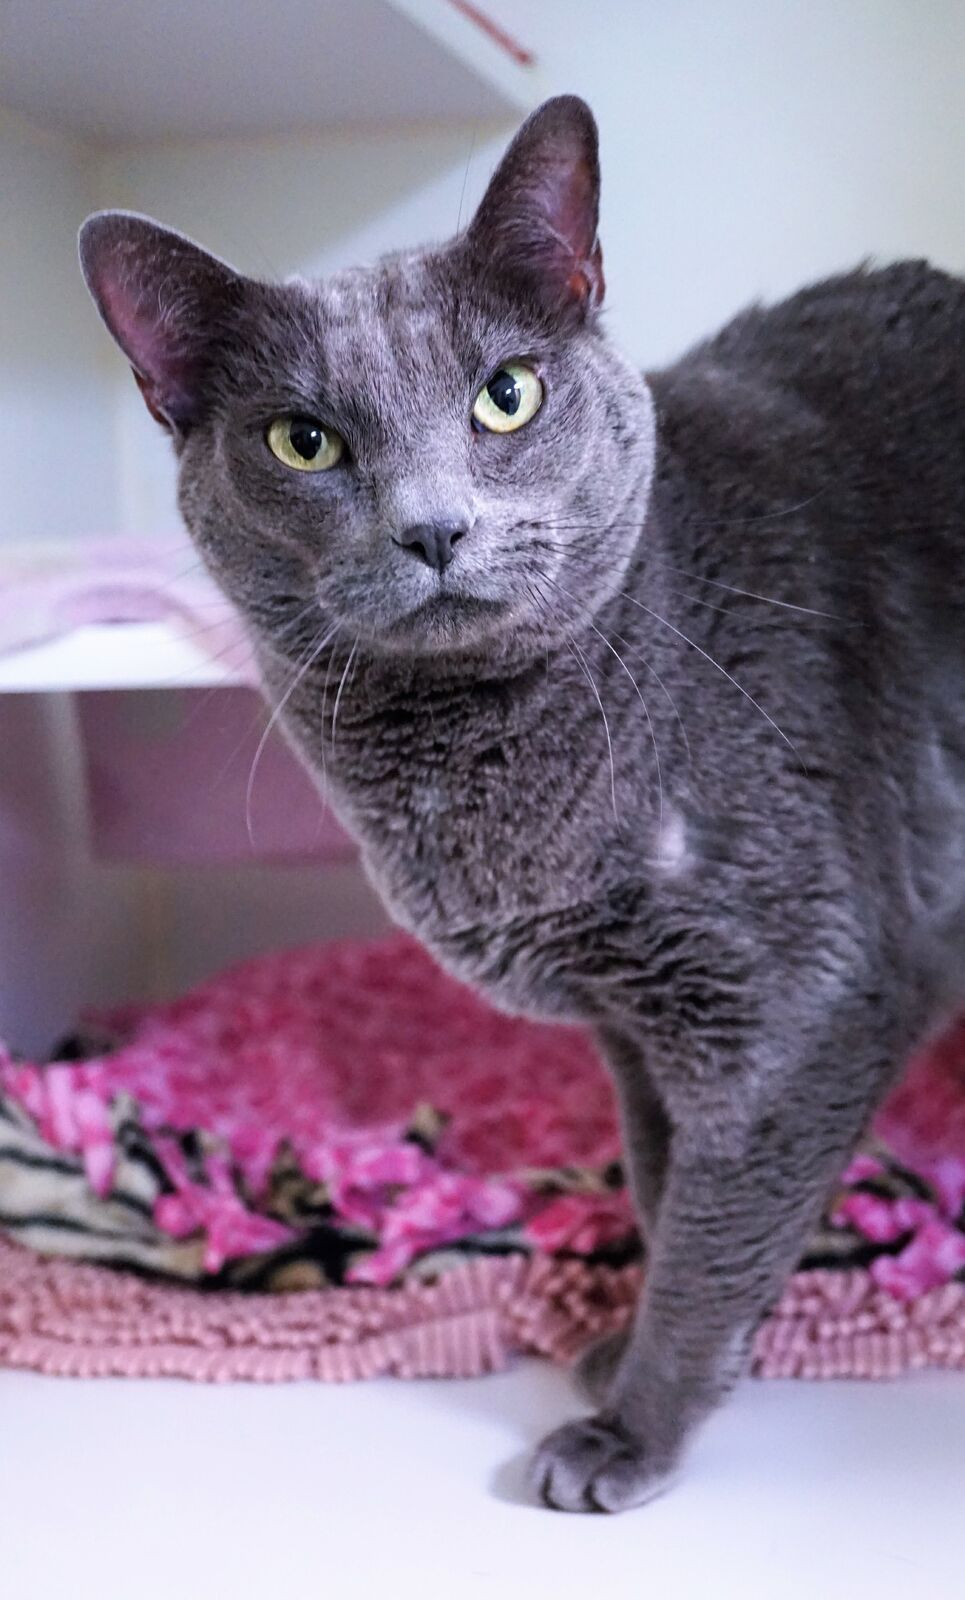 Hi there, my name is Majesty! I'm a lovely, six year old domestic shorthaired girl hoping to go home with you! I'd love to be your queen bee companion and I promise to reward you tenfold with love and loyalty. A quiet home where I can spend my days sleeping on a warm bed and bird-watching out the window would make me the happiest girl – I'll even climb in your lap when I want to. Sound like a match?{&amp;nbsp;}{&amp;nbsp;}<p></p>